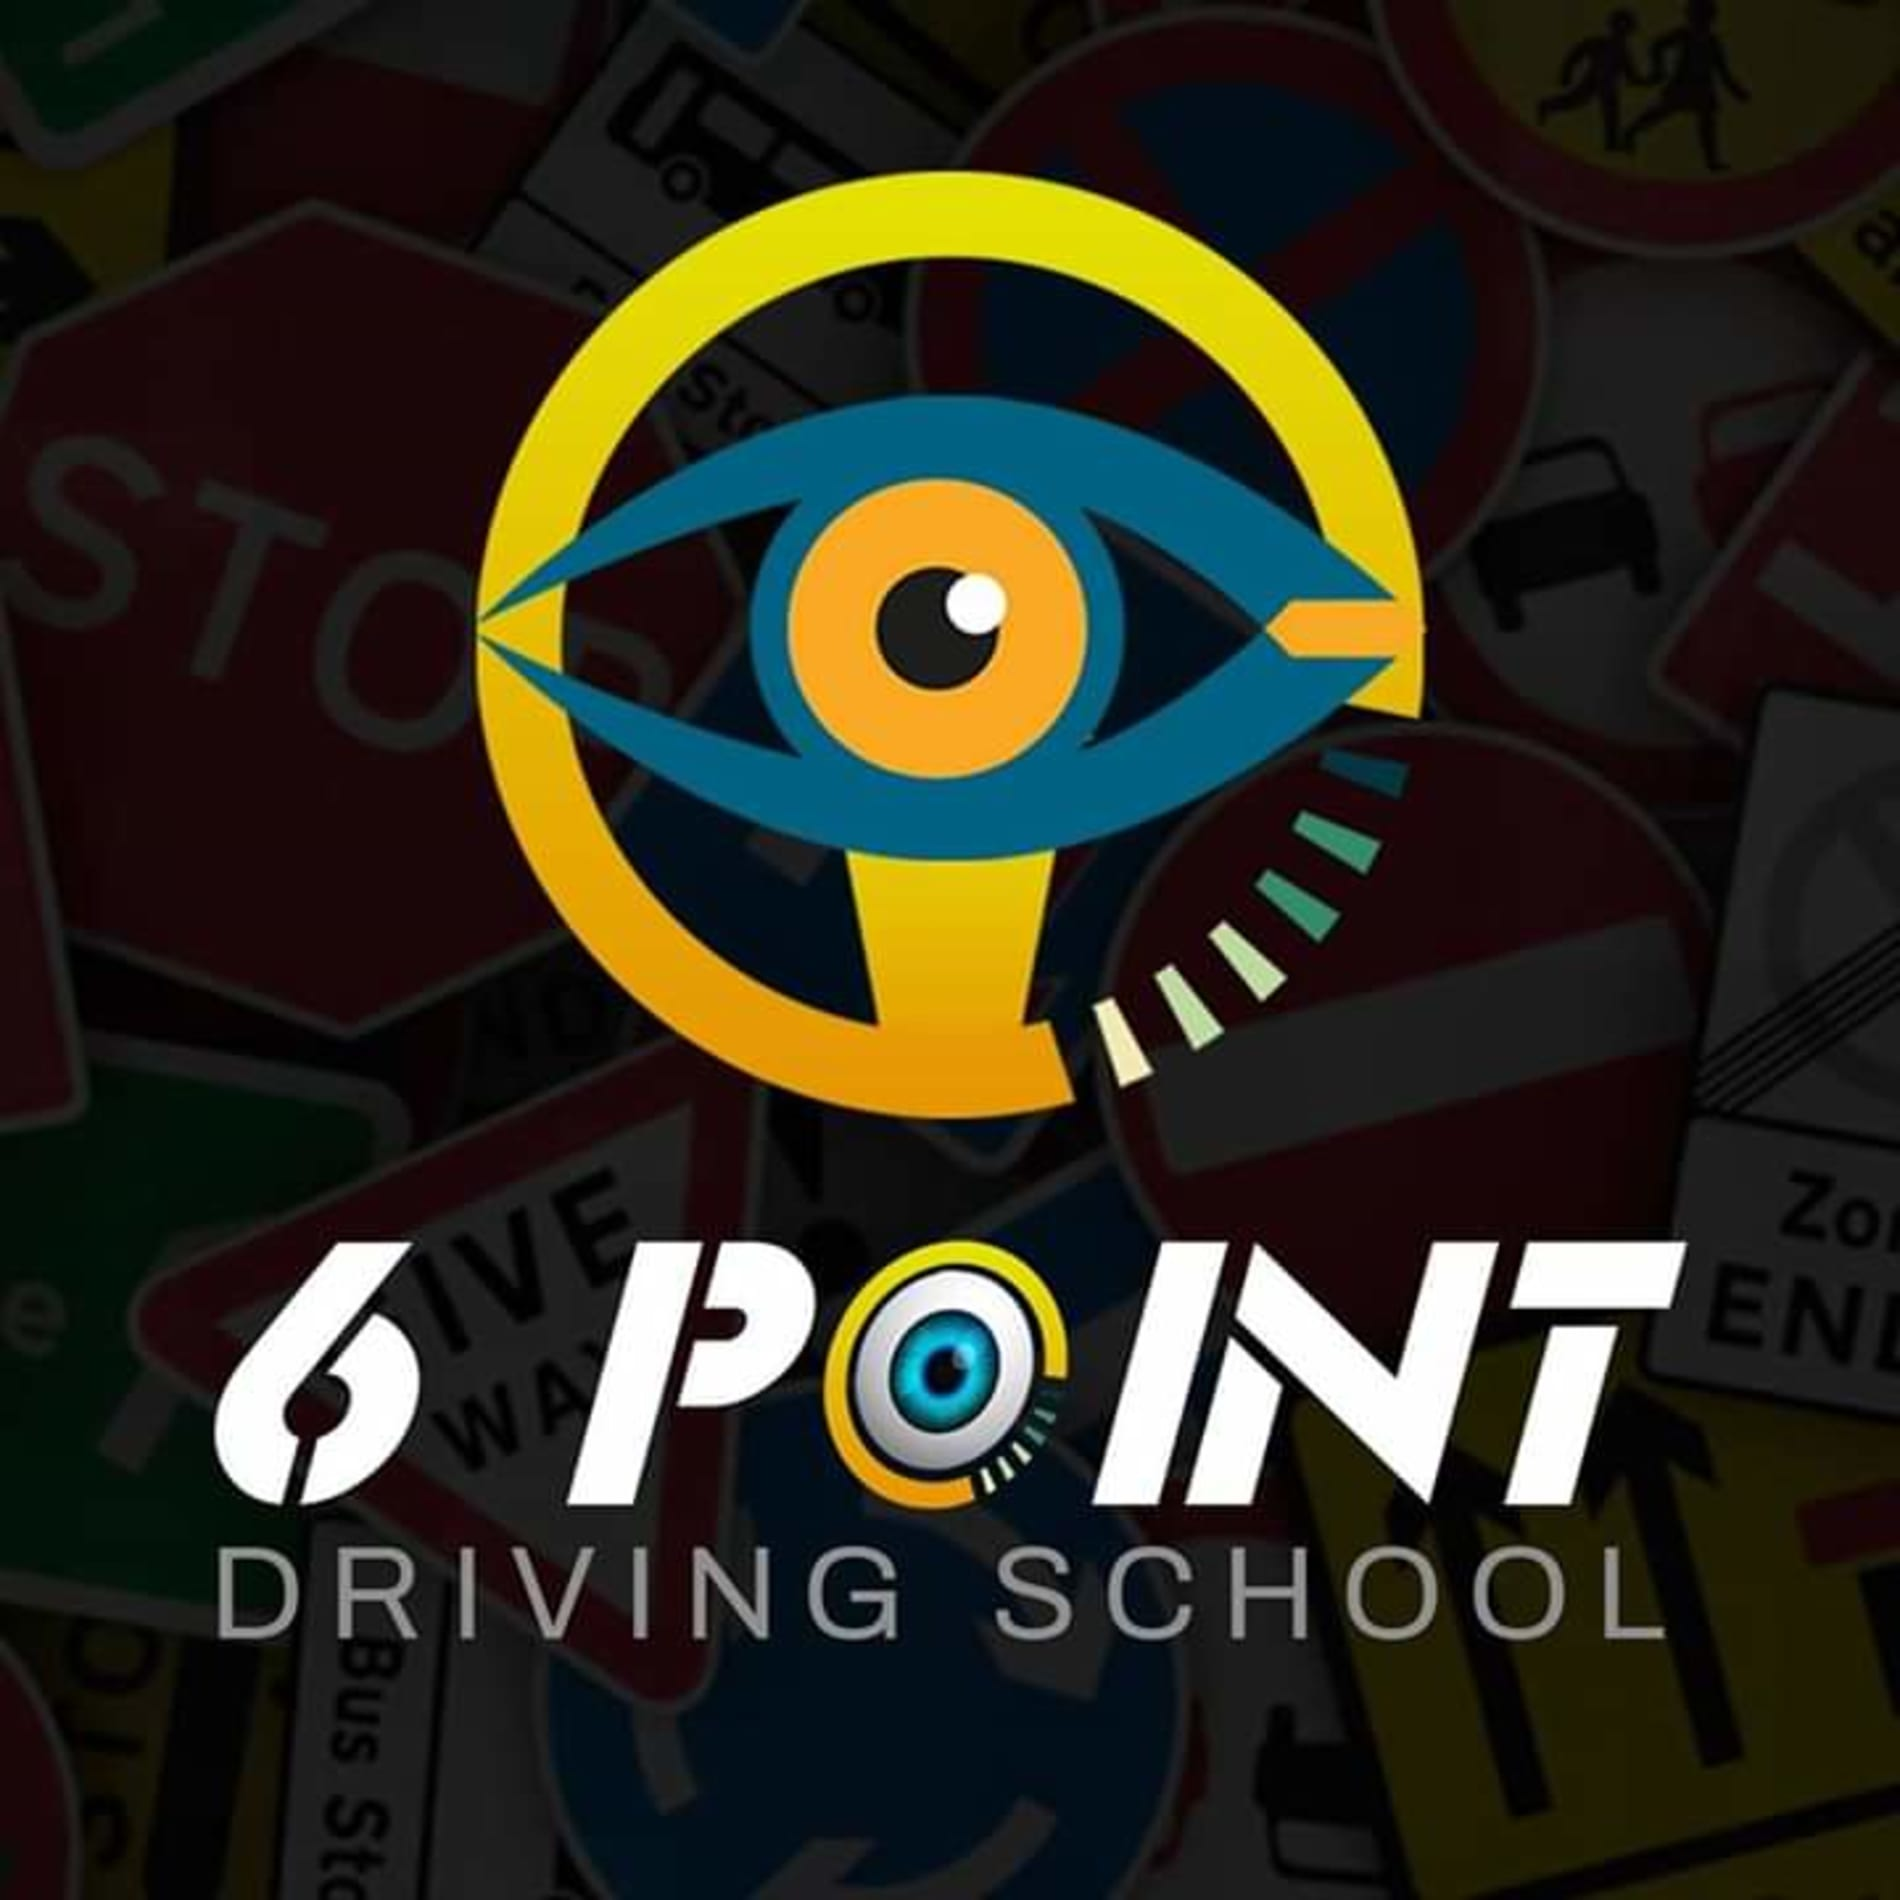 6 Point Driving School